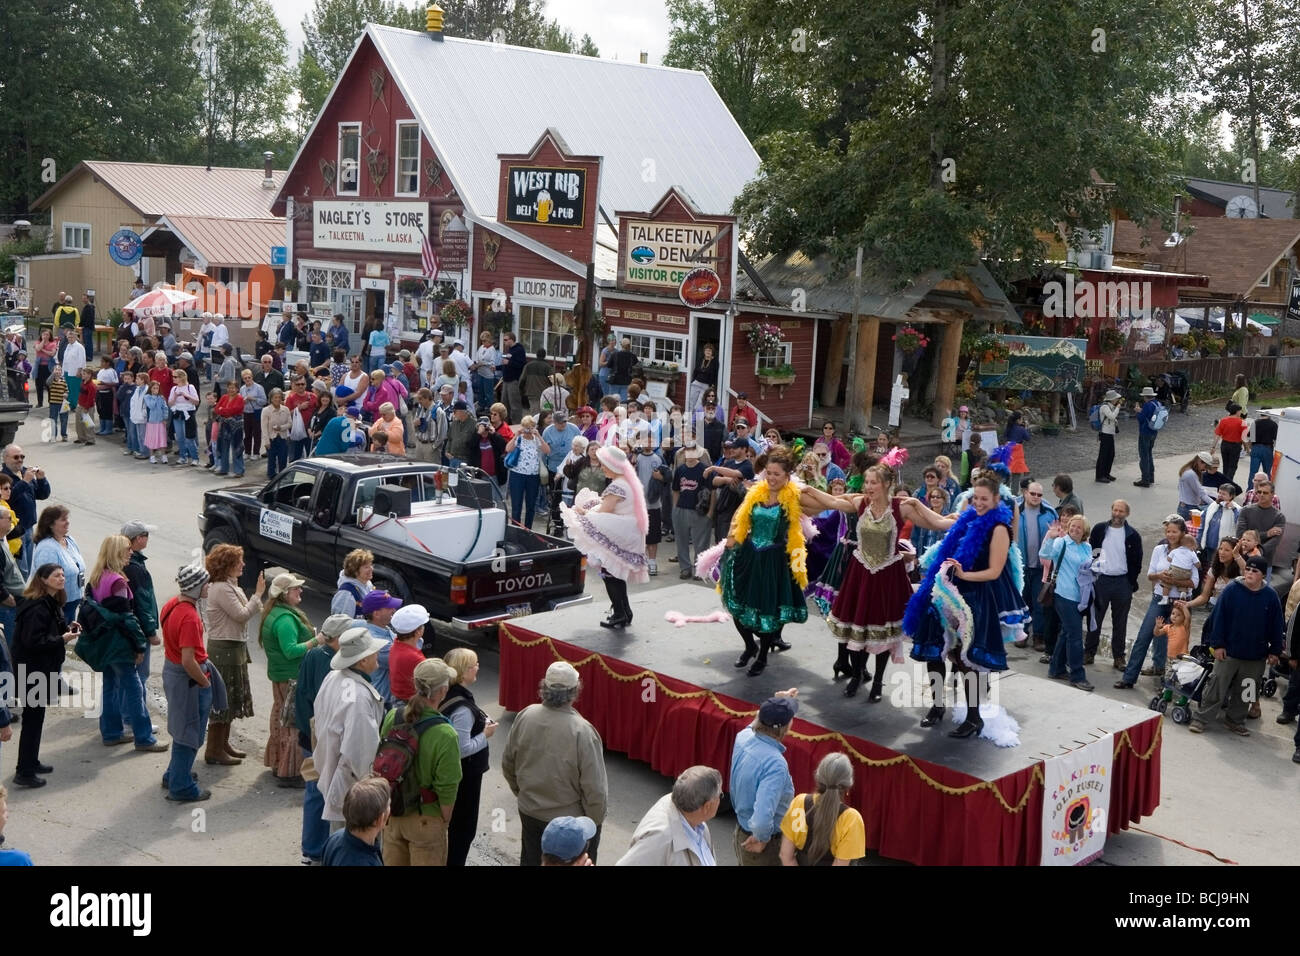 talkeetna sex chat Many men like sex with hot prostitutes in kenai and search for it every week or even every day  find out and chat now  227 km talkeetna 227 km trapper creek.